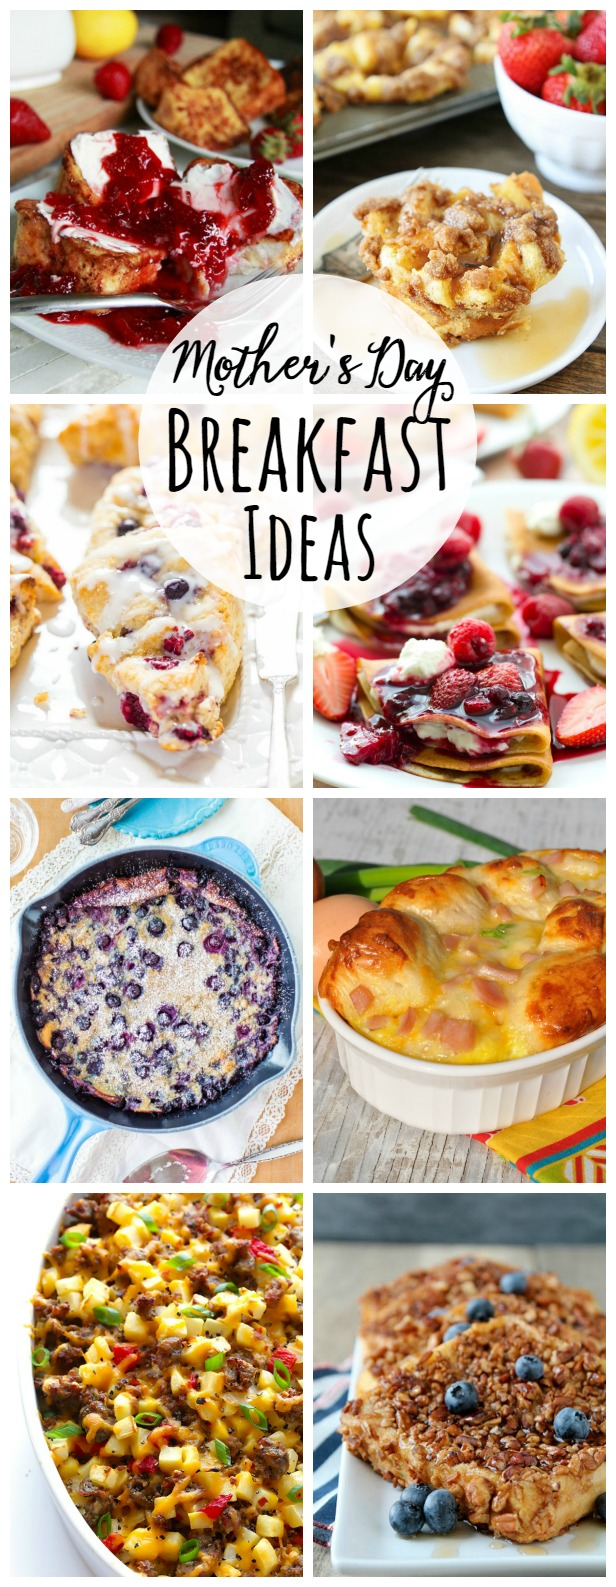 Awesome breakfast and brunch recipes - perfect for Mother's Day!